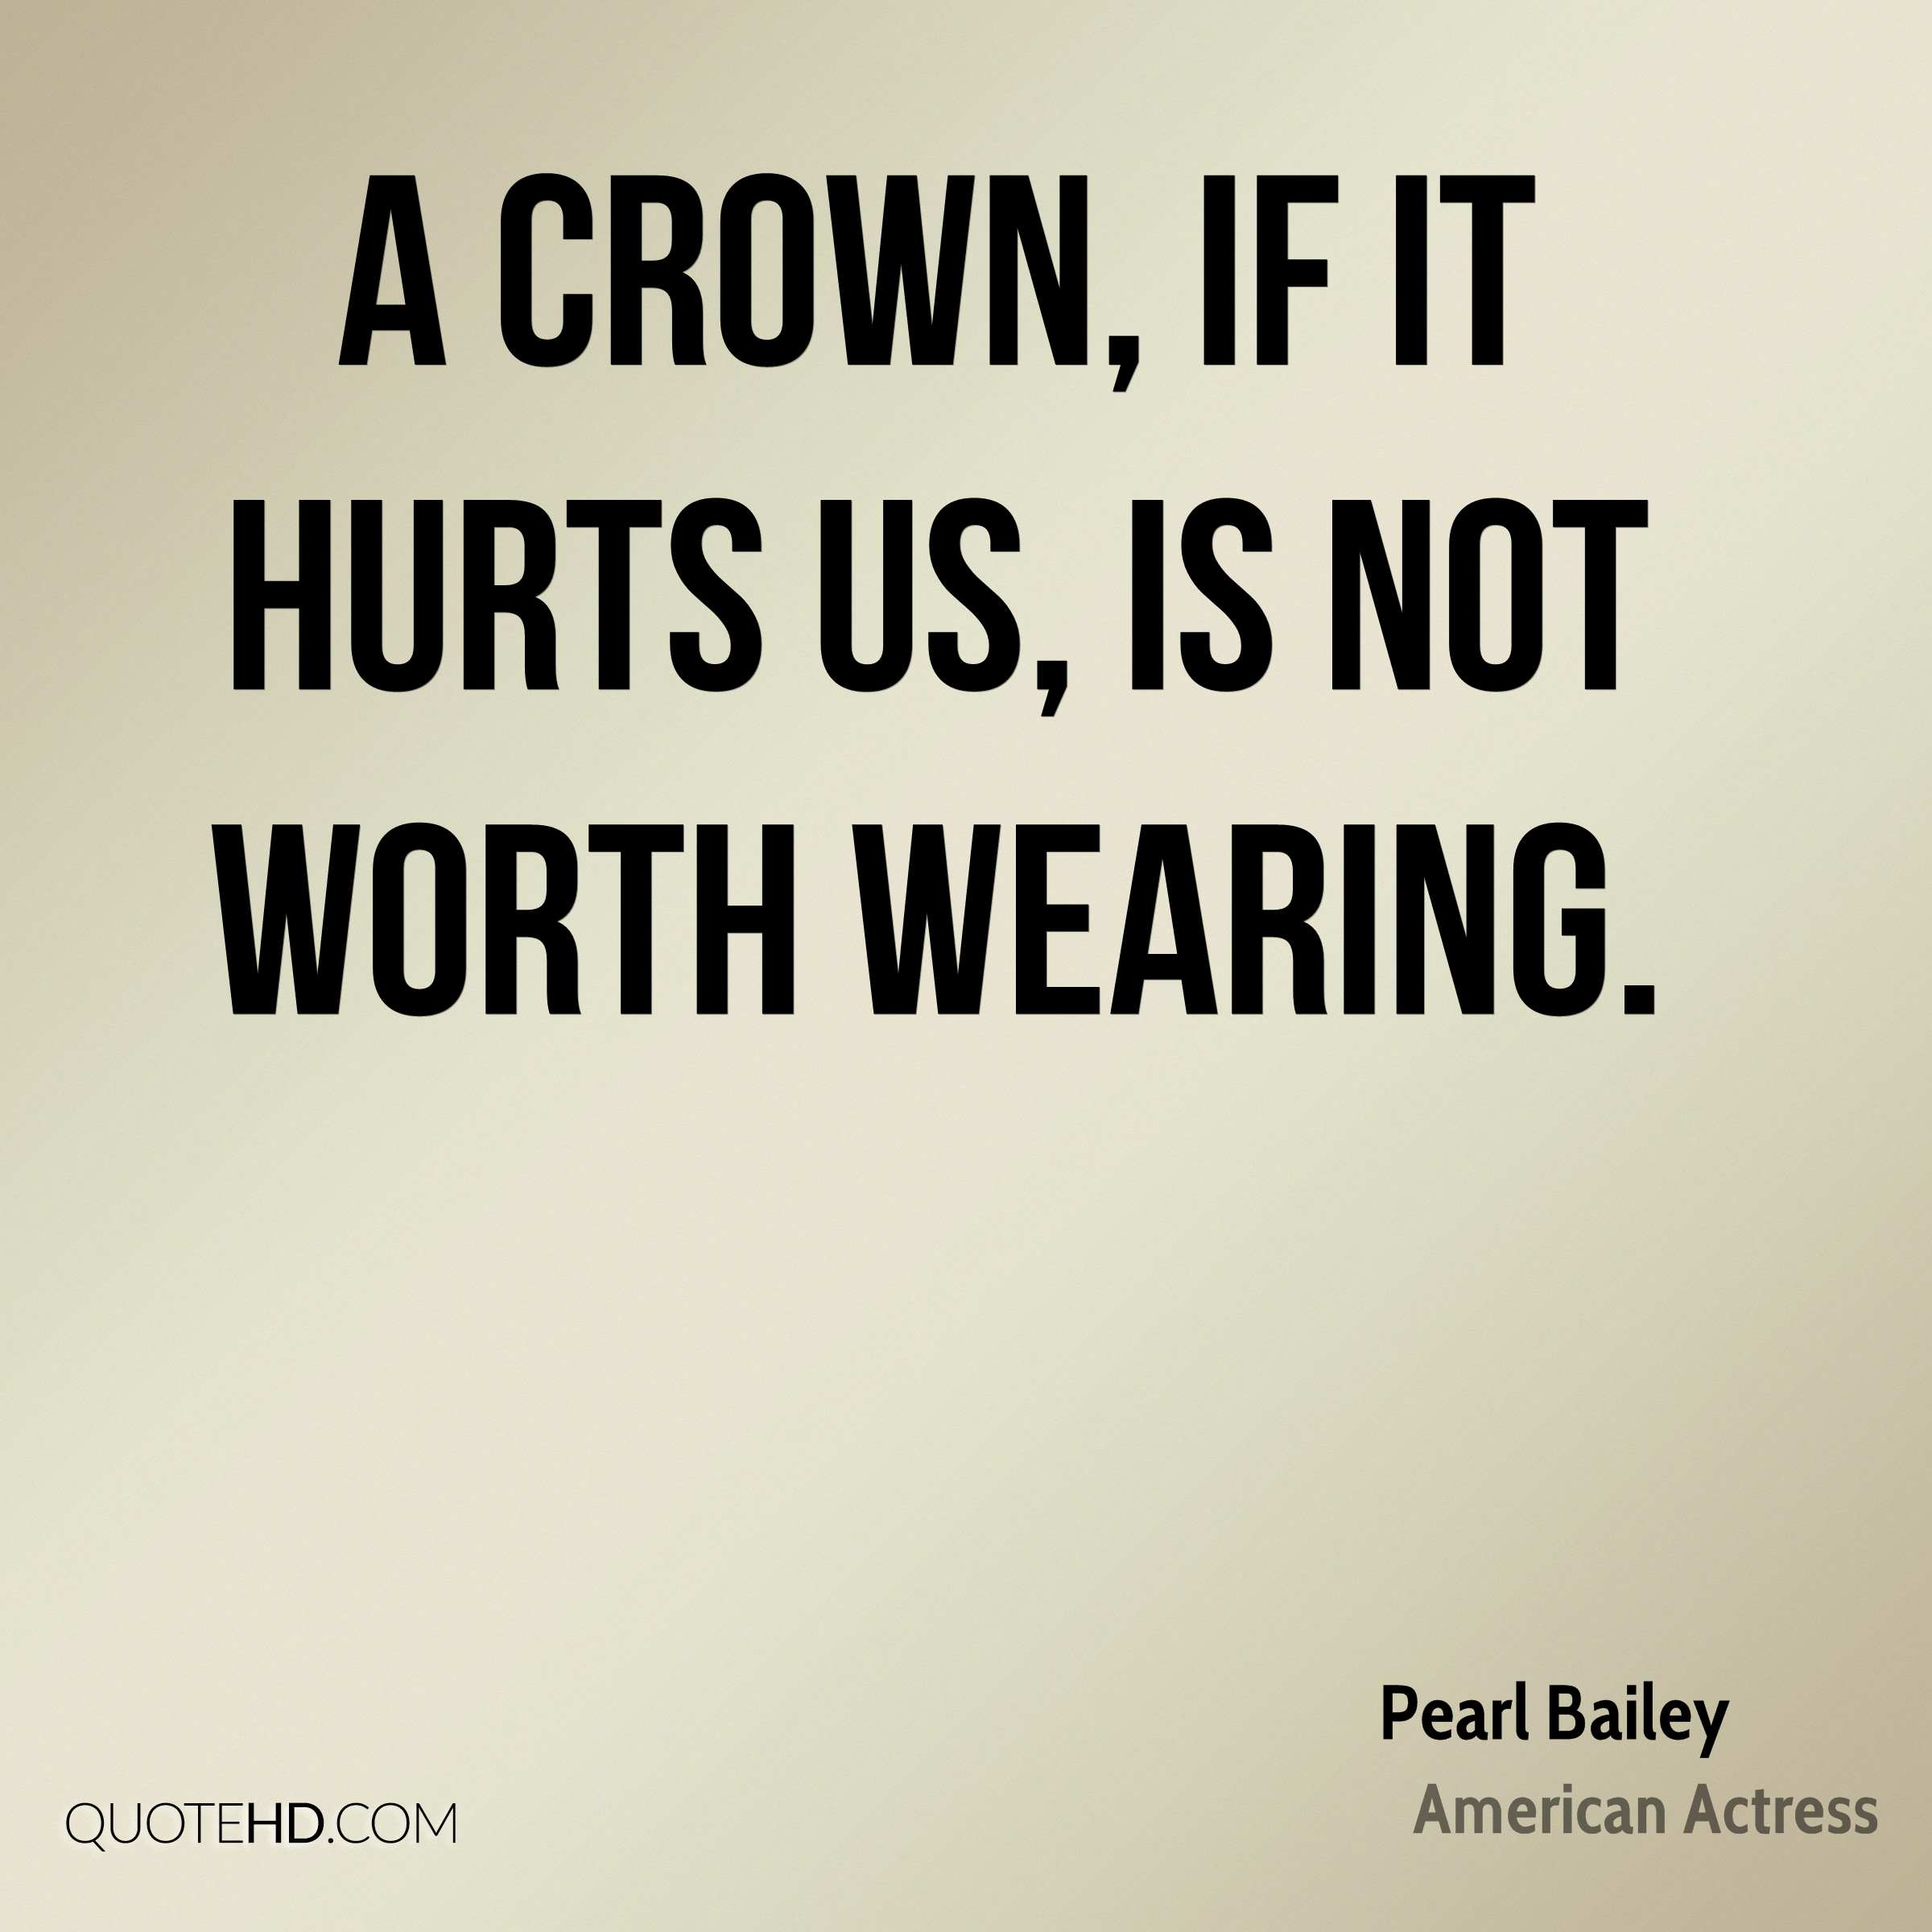 Pearl Bailey Quotes | QuoteHD